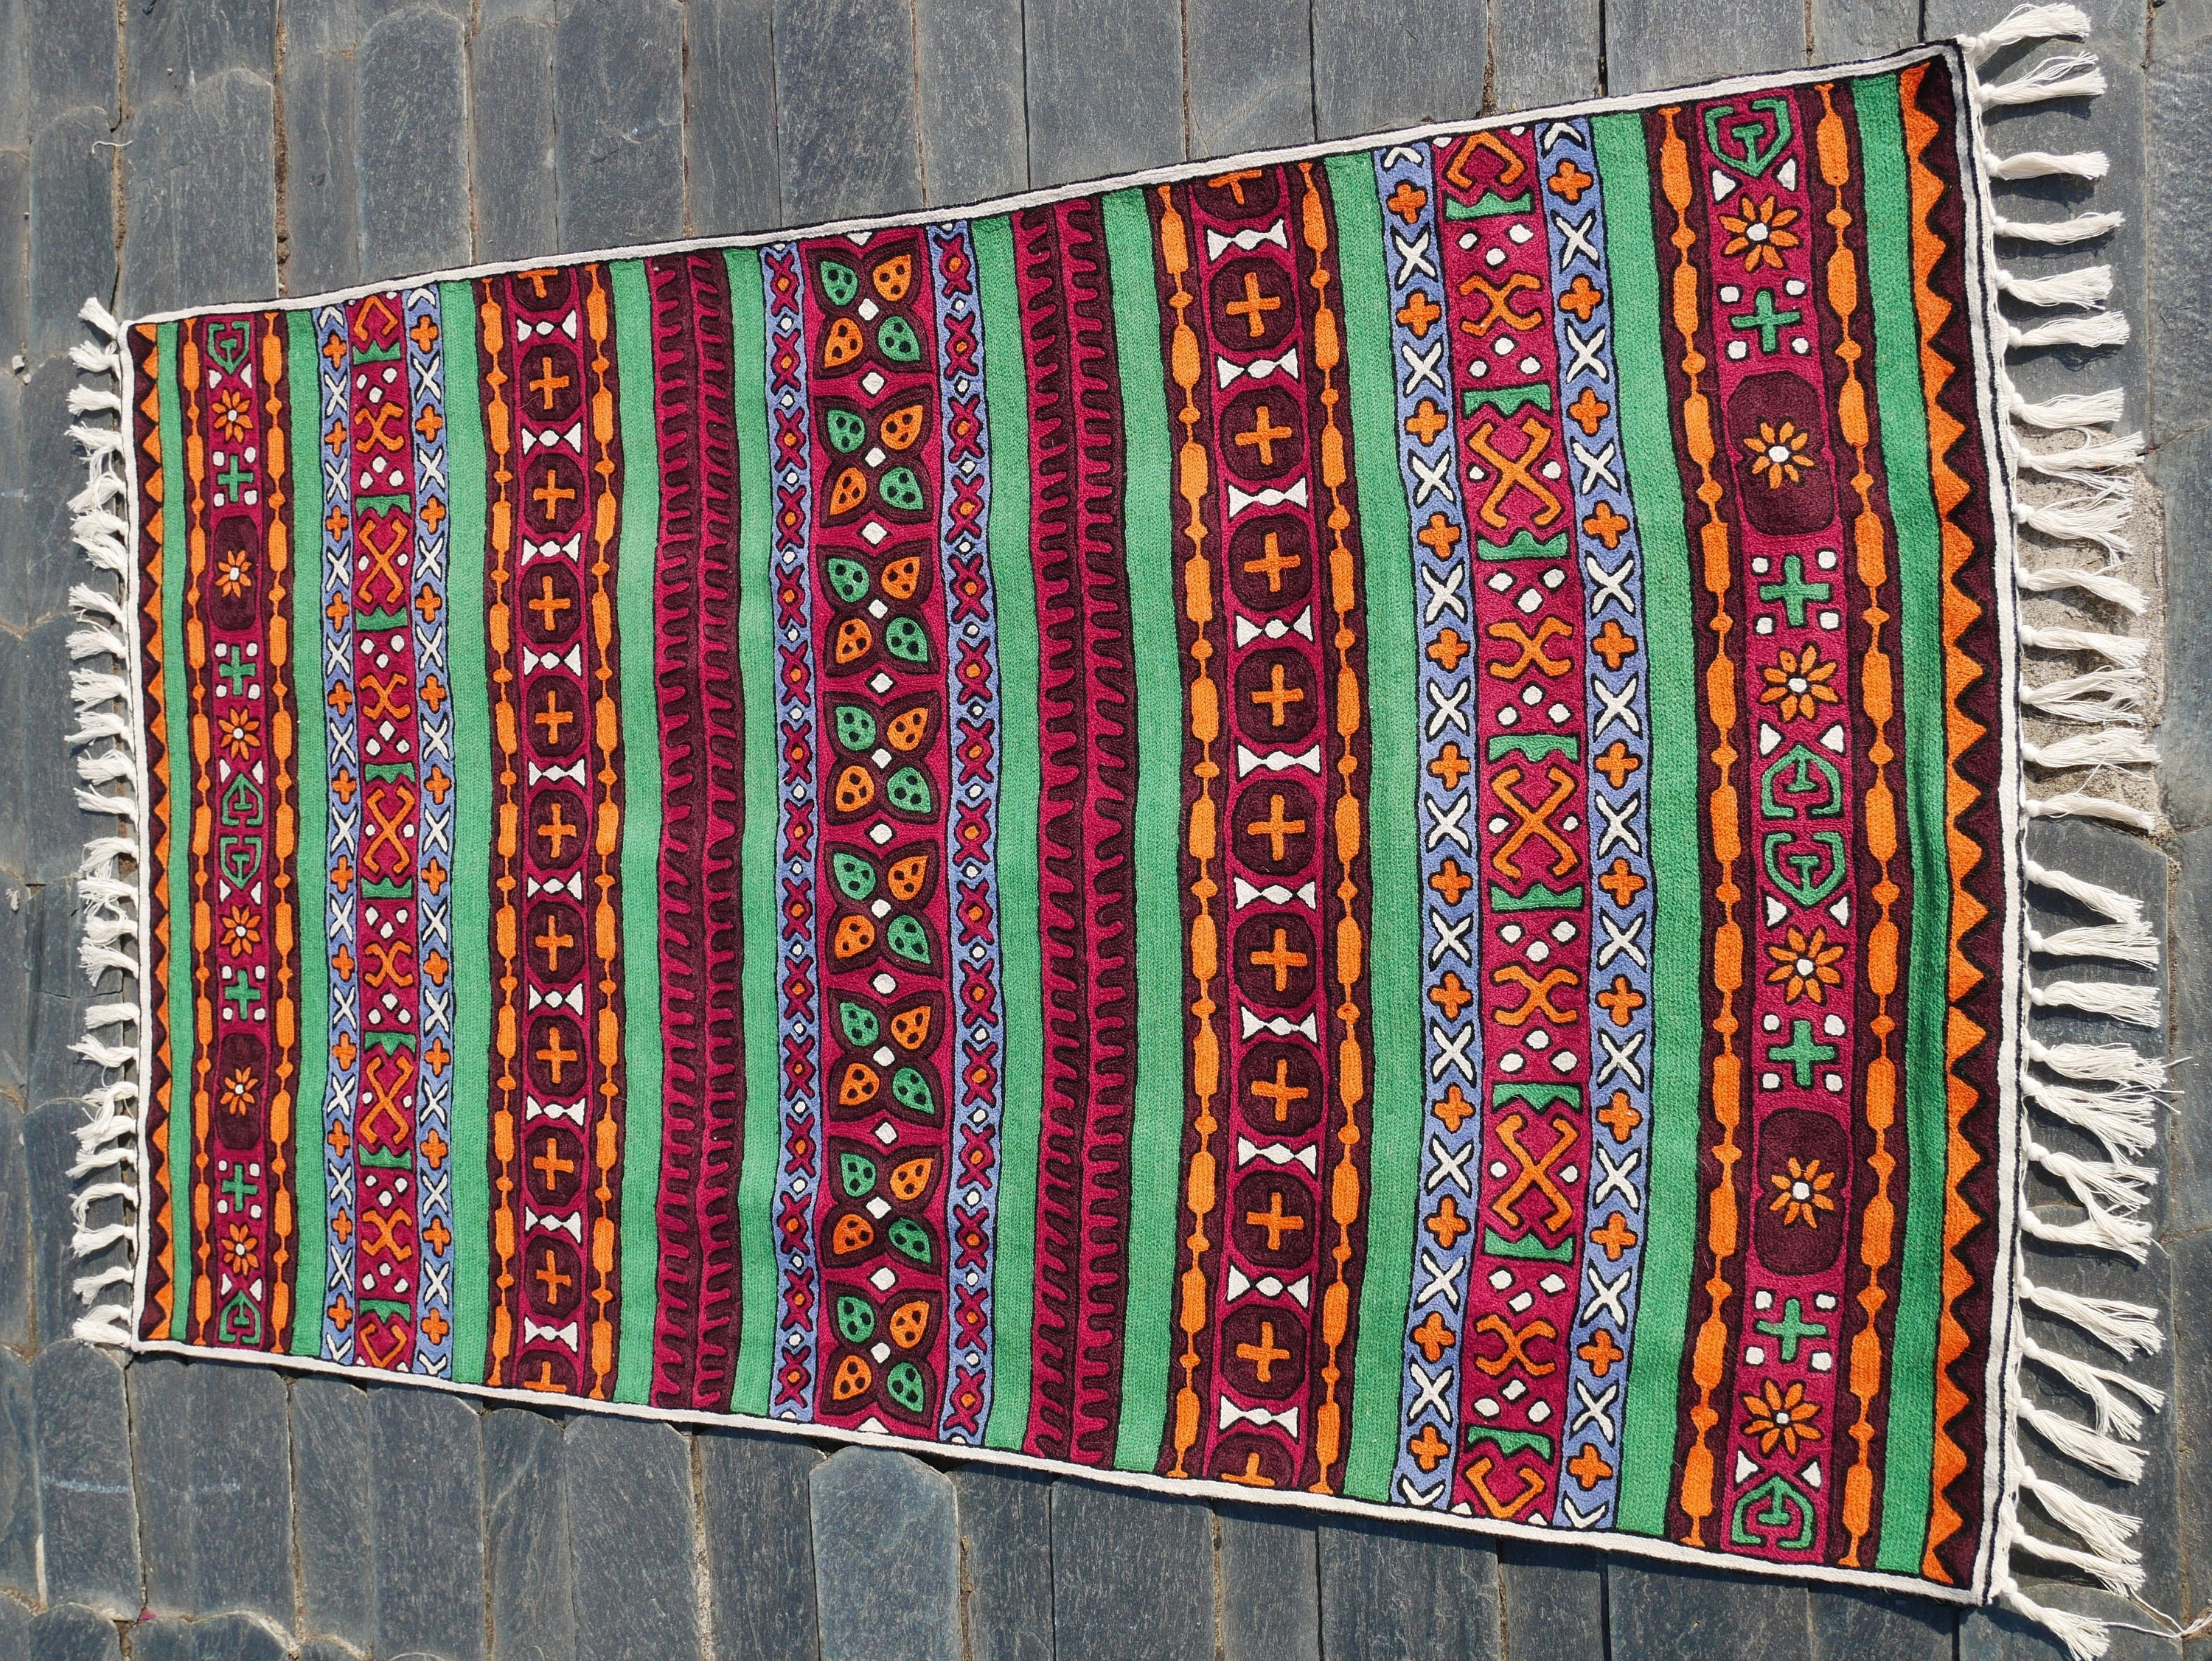 Kashmiri wool rug 3x5 traditional handmade rug | tribal geometric embroidery | runner rug